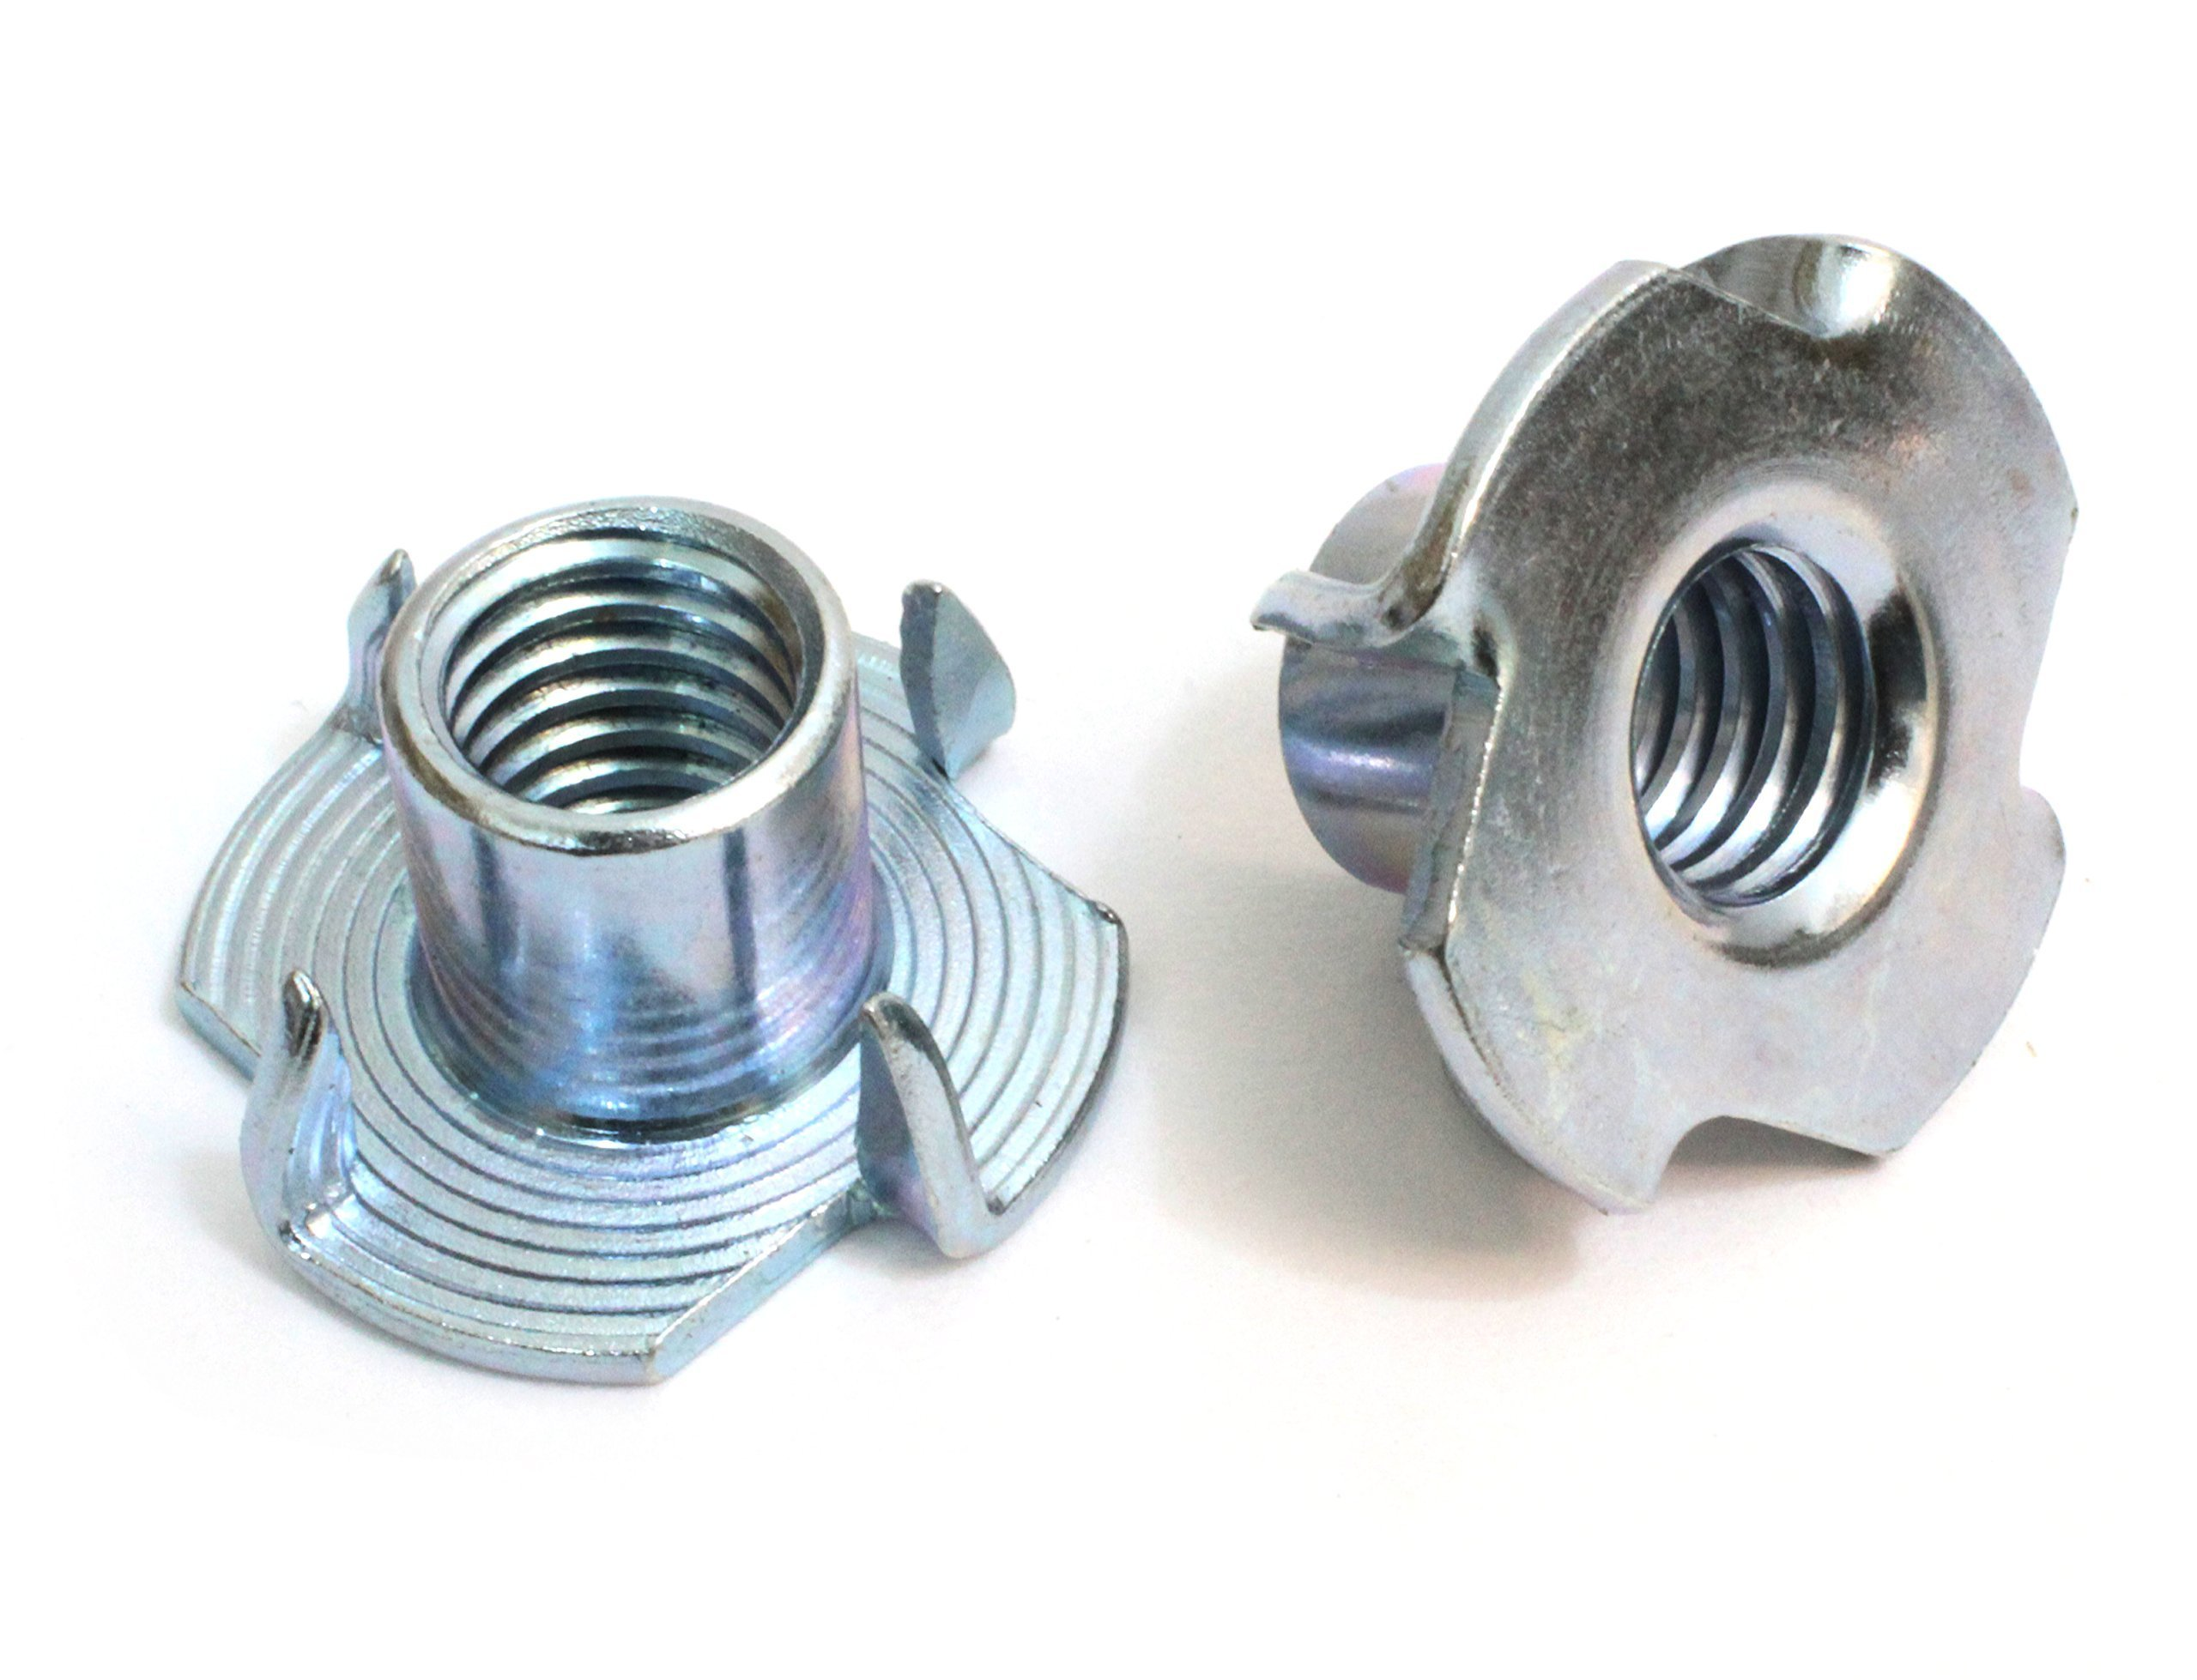 T-Nut 1/4''-20 x 5/16'', (100 Pack), By Bolt Dropper, Pronged Tee Nut. For Rock Climbing Holds, Wood, Cabinetry, etc.